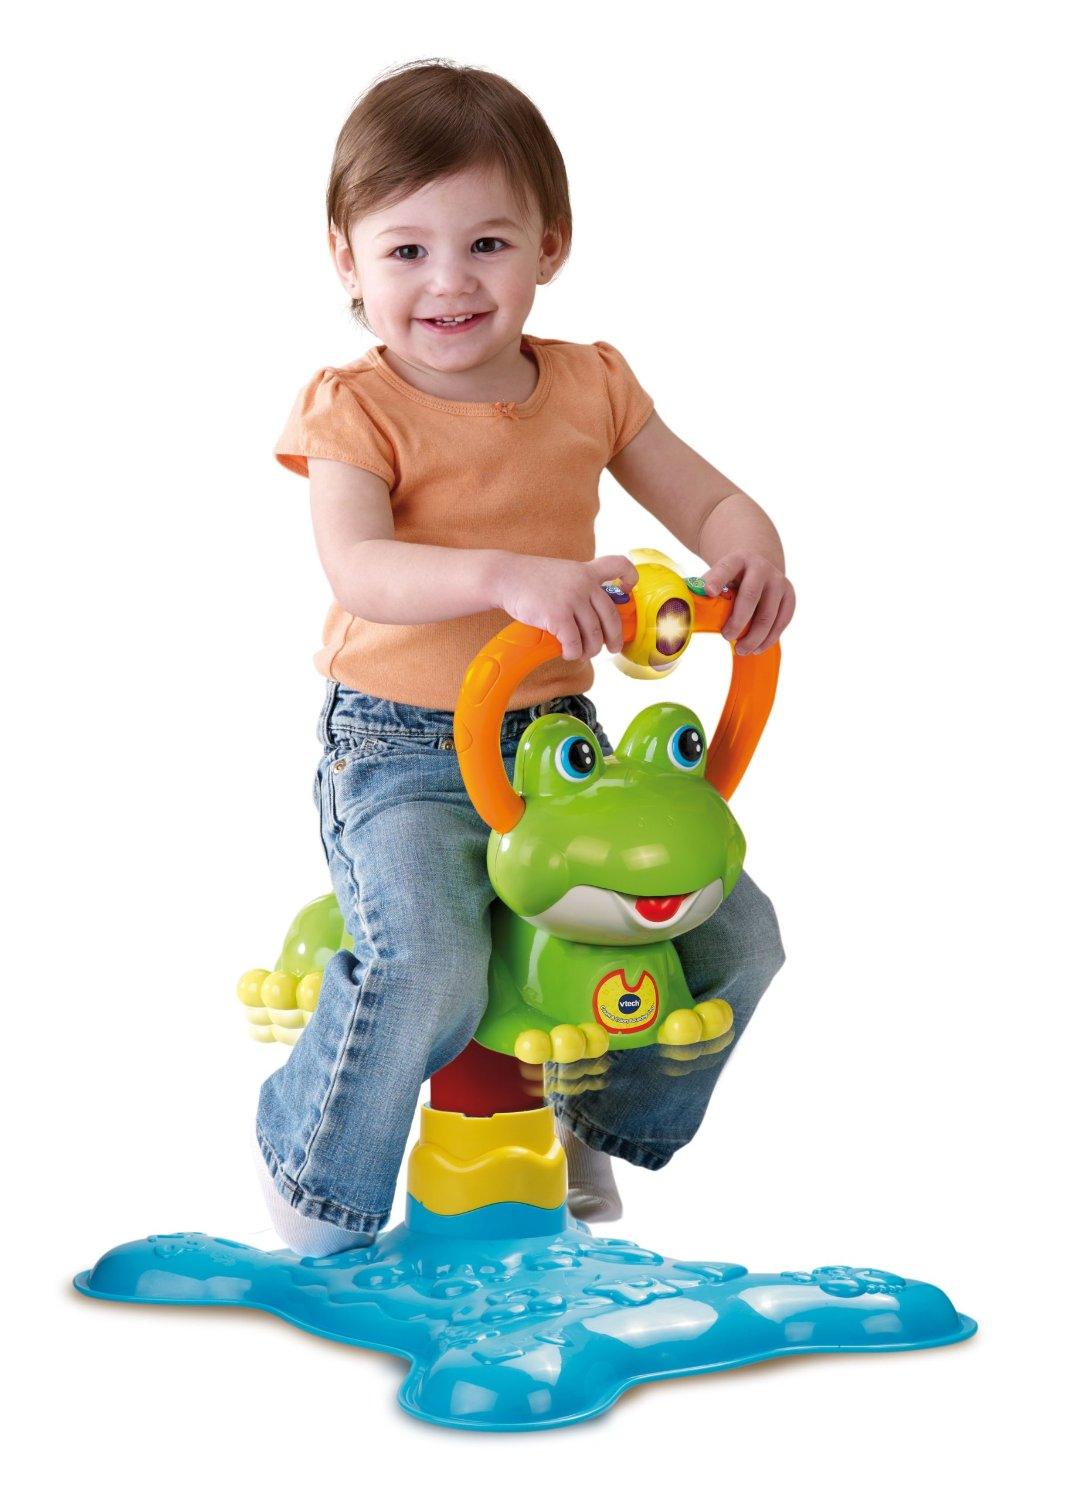 12 Month Olds Toys For Bouncing : Amazon vtech count and colors bouncing frog toy